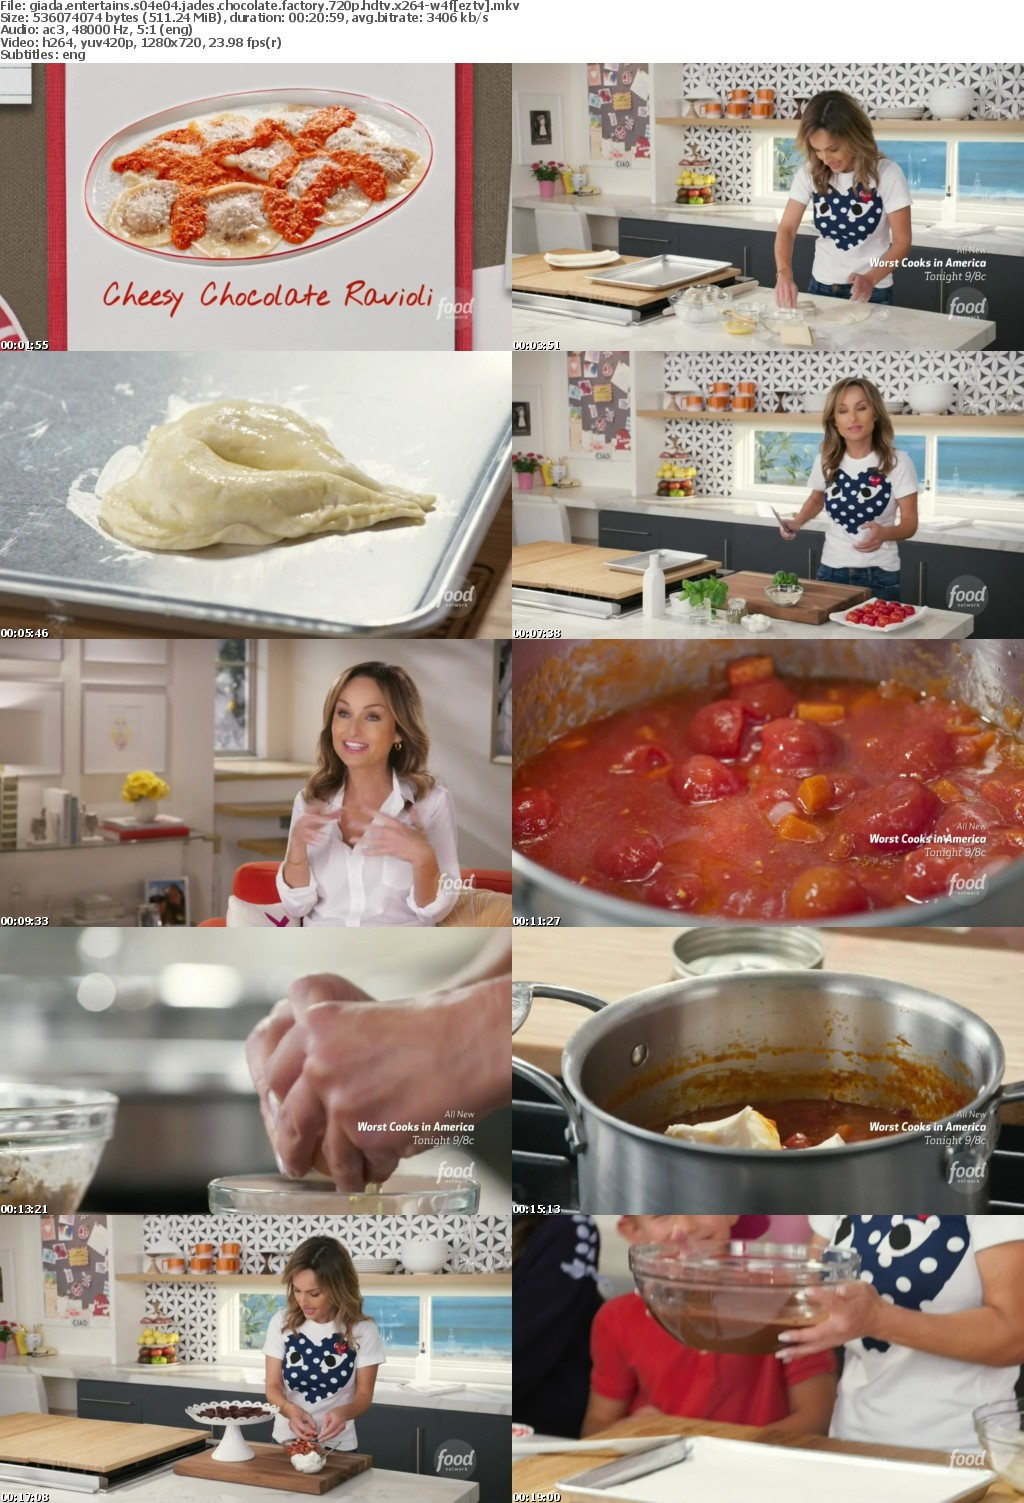 Giada Entertains S04E04 Jades Chocolate Factory 720p HDTV x264-W4F